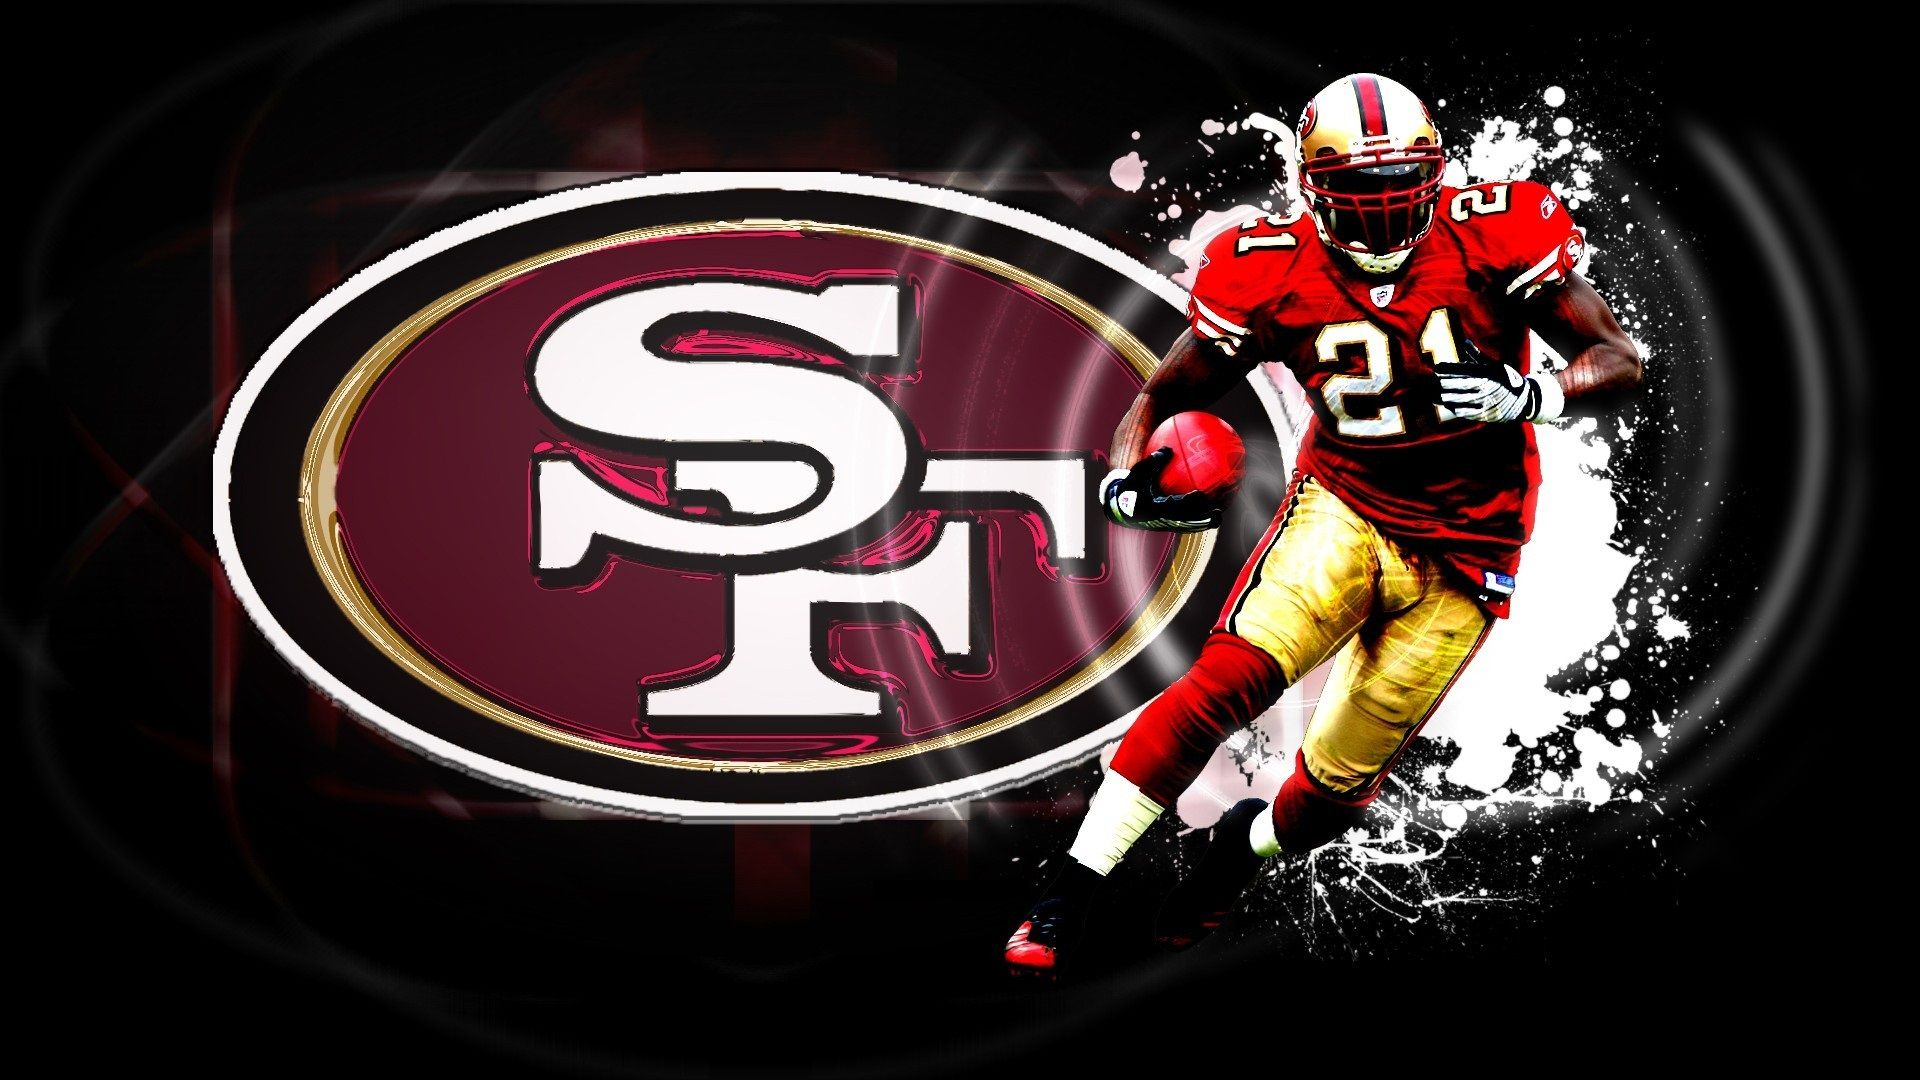 HD San Francisco 49ers Backgrounds San francisco 49ers